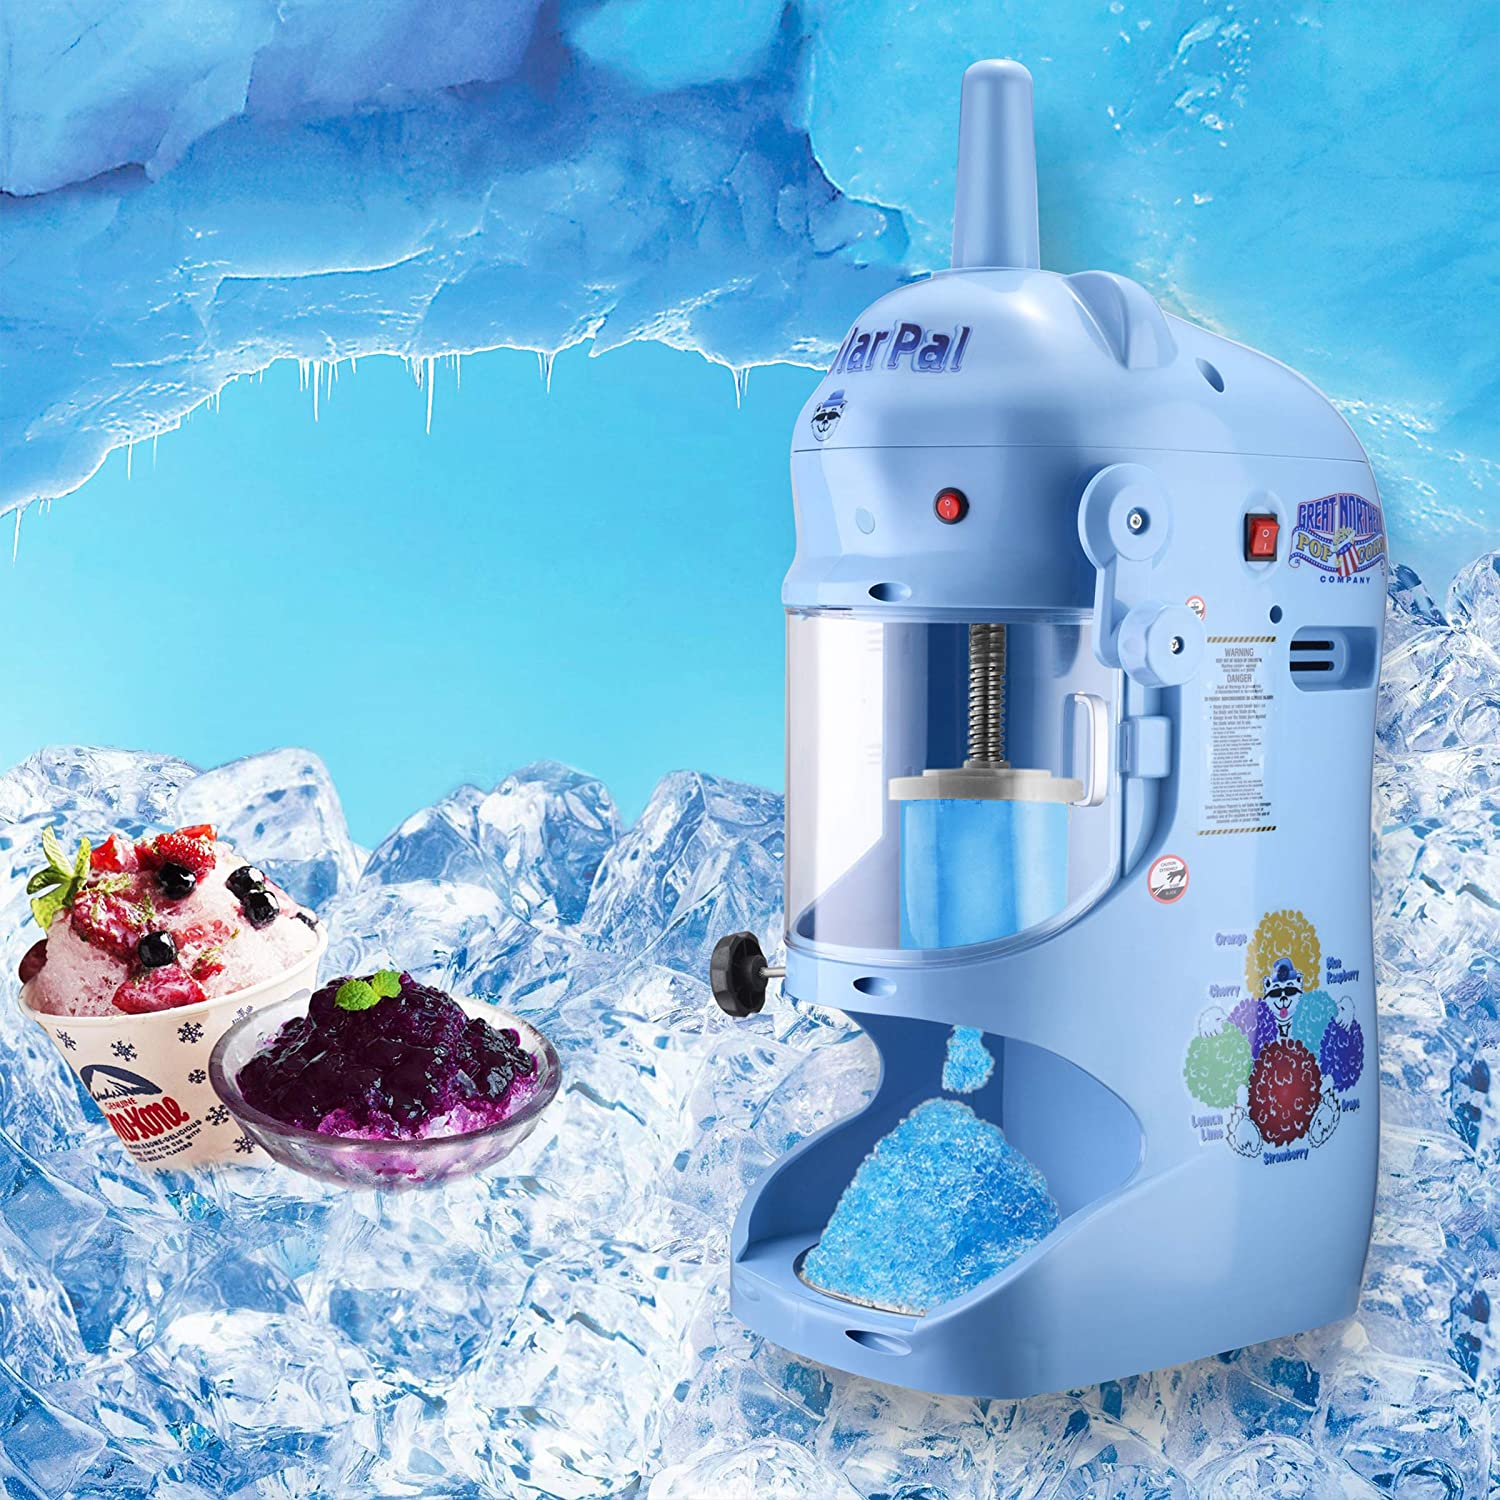 Great Northern 83-NA6065 Northern Blue Hawaiian Shaver Professional Polar Pal Ice Crusher Model with Safety Shield 120V Electric Snow Cone Machine